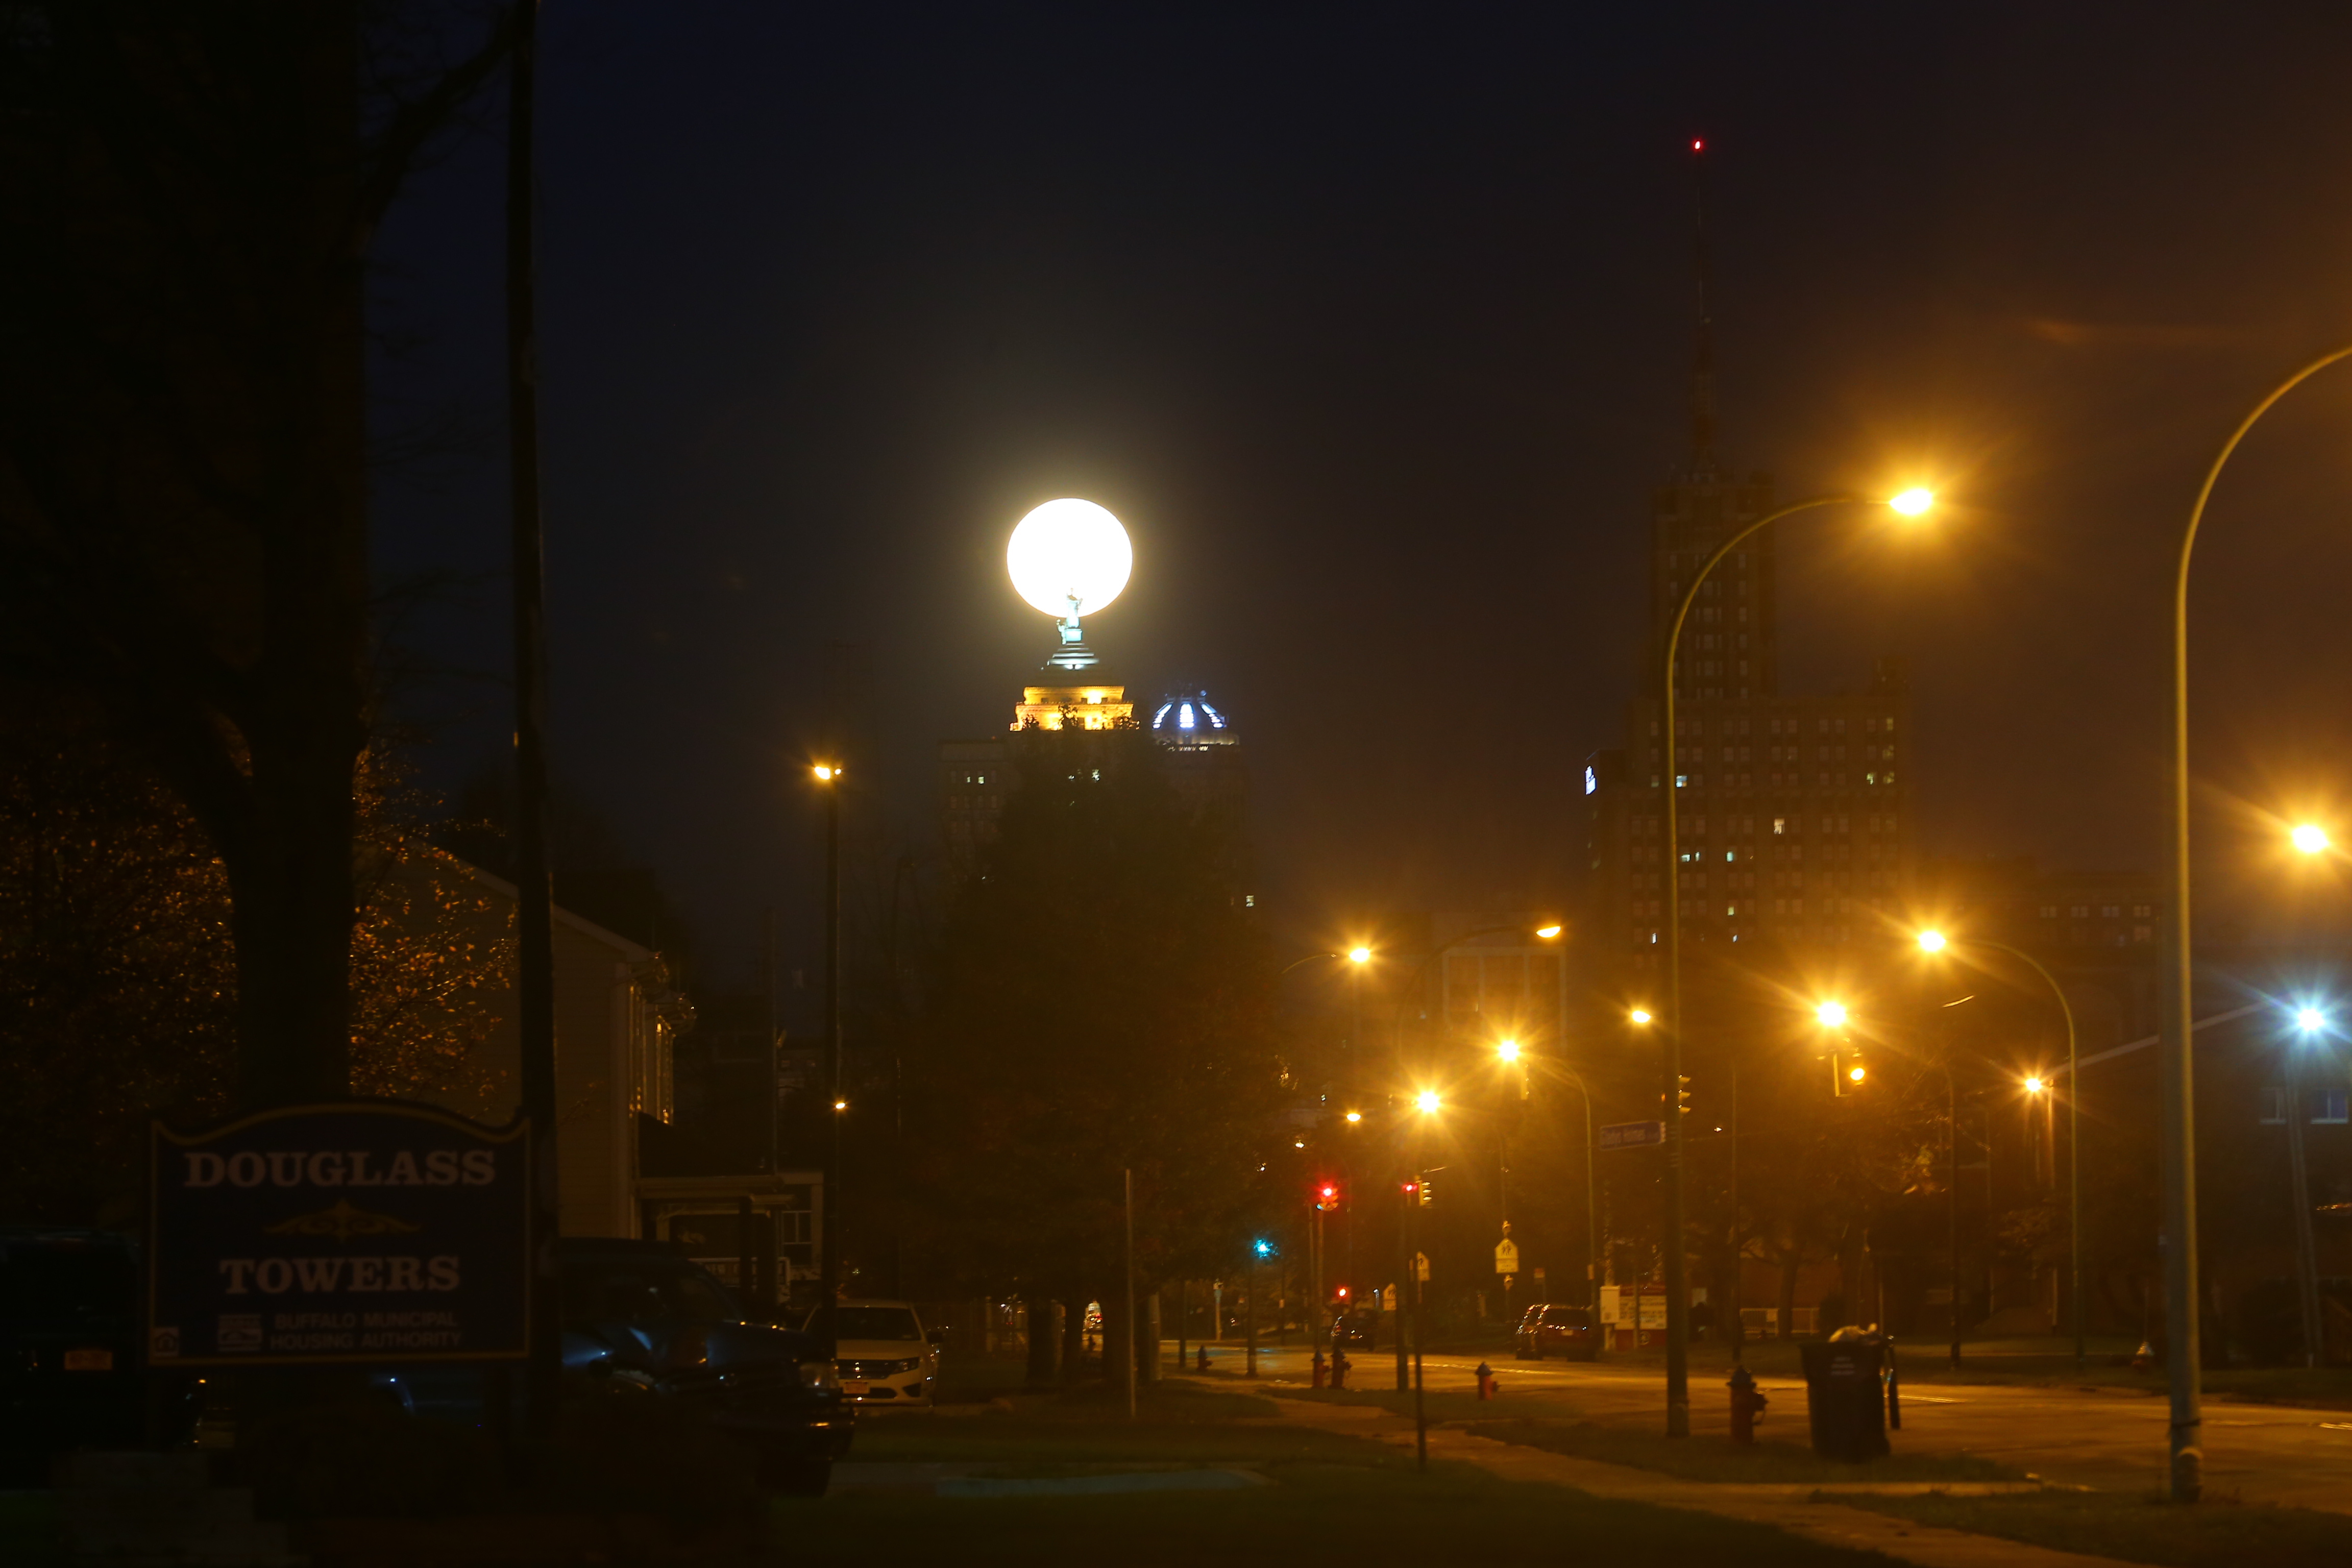 The supermoon sets over the Liberty Building in the early morning on Nov. 14 in Buffalo. (John Hickey/Buffalo News)